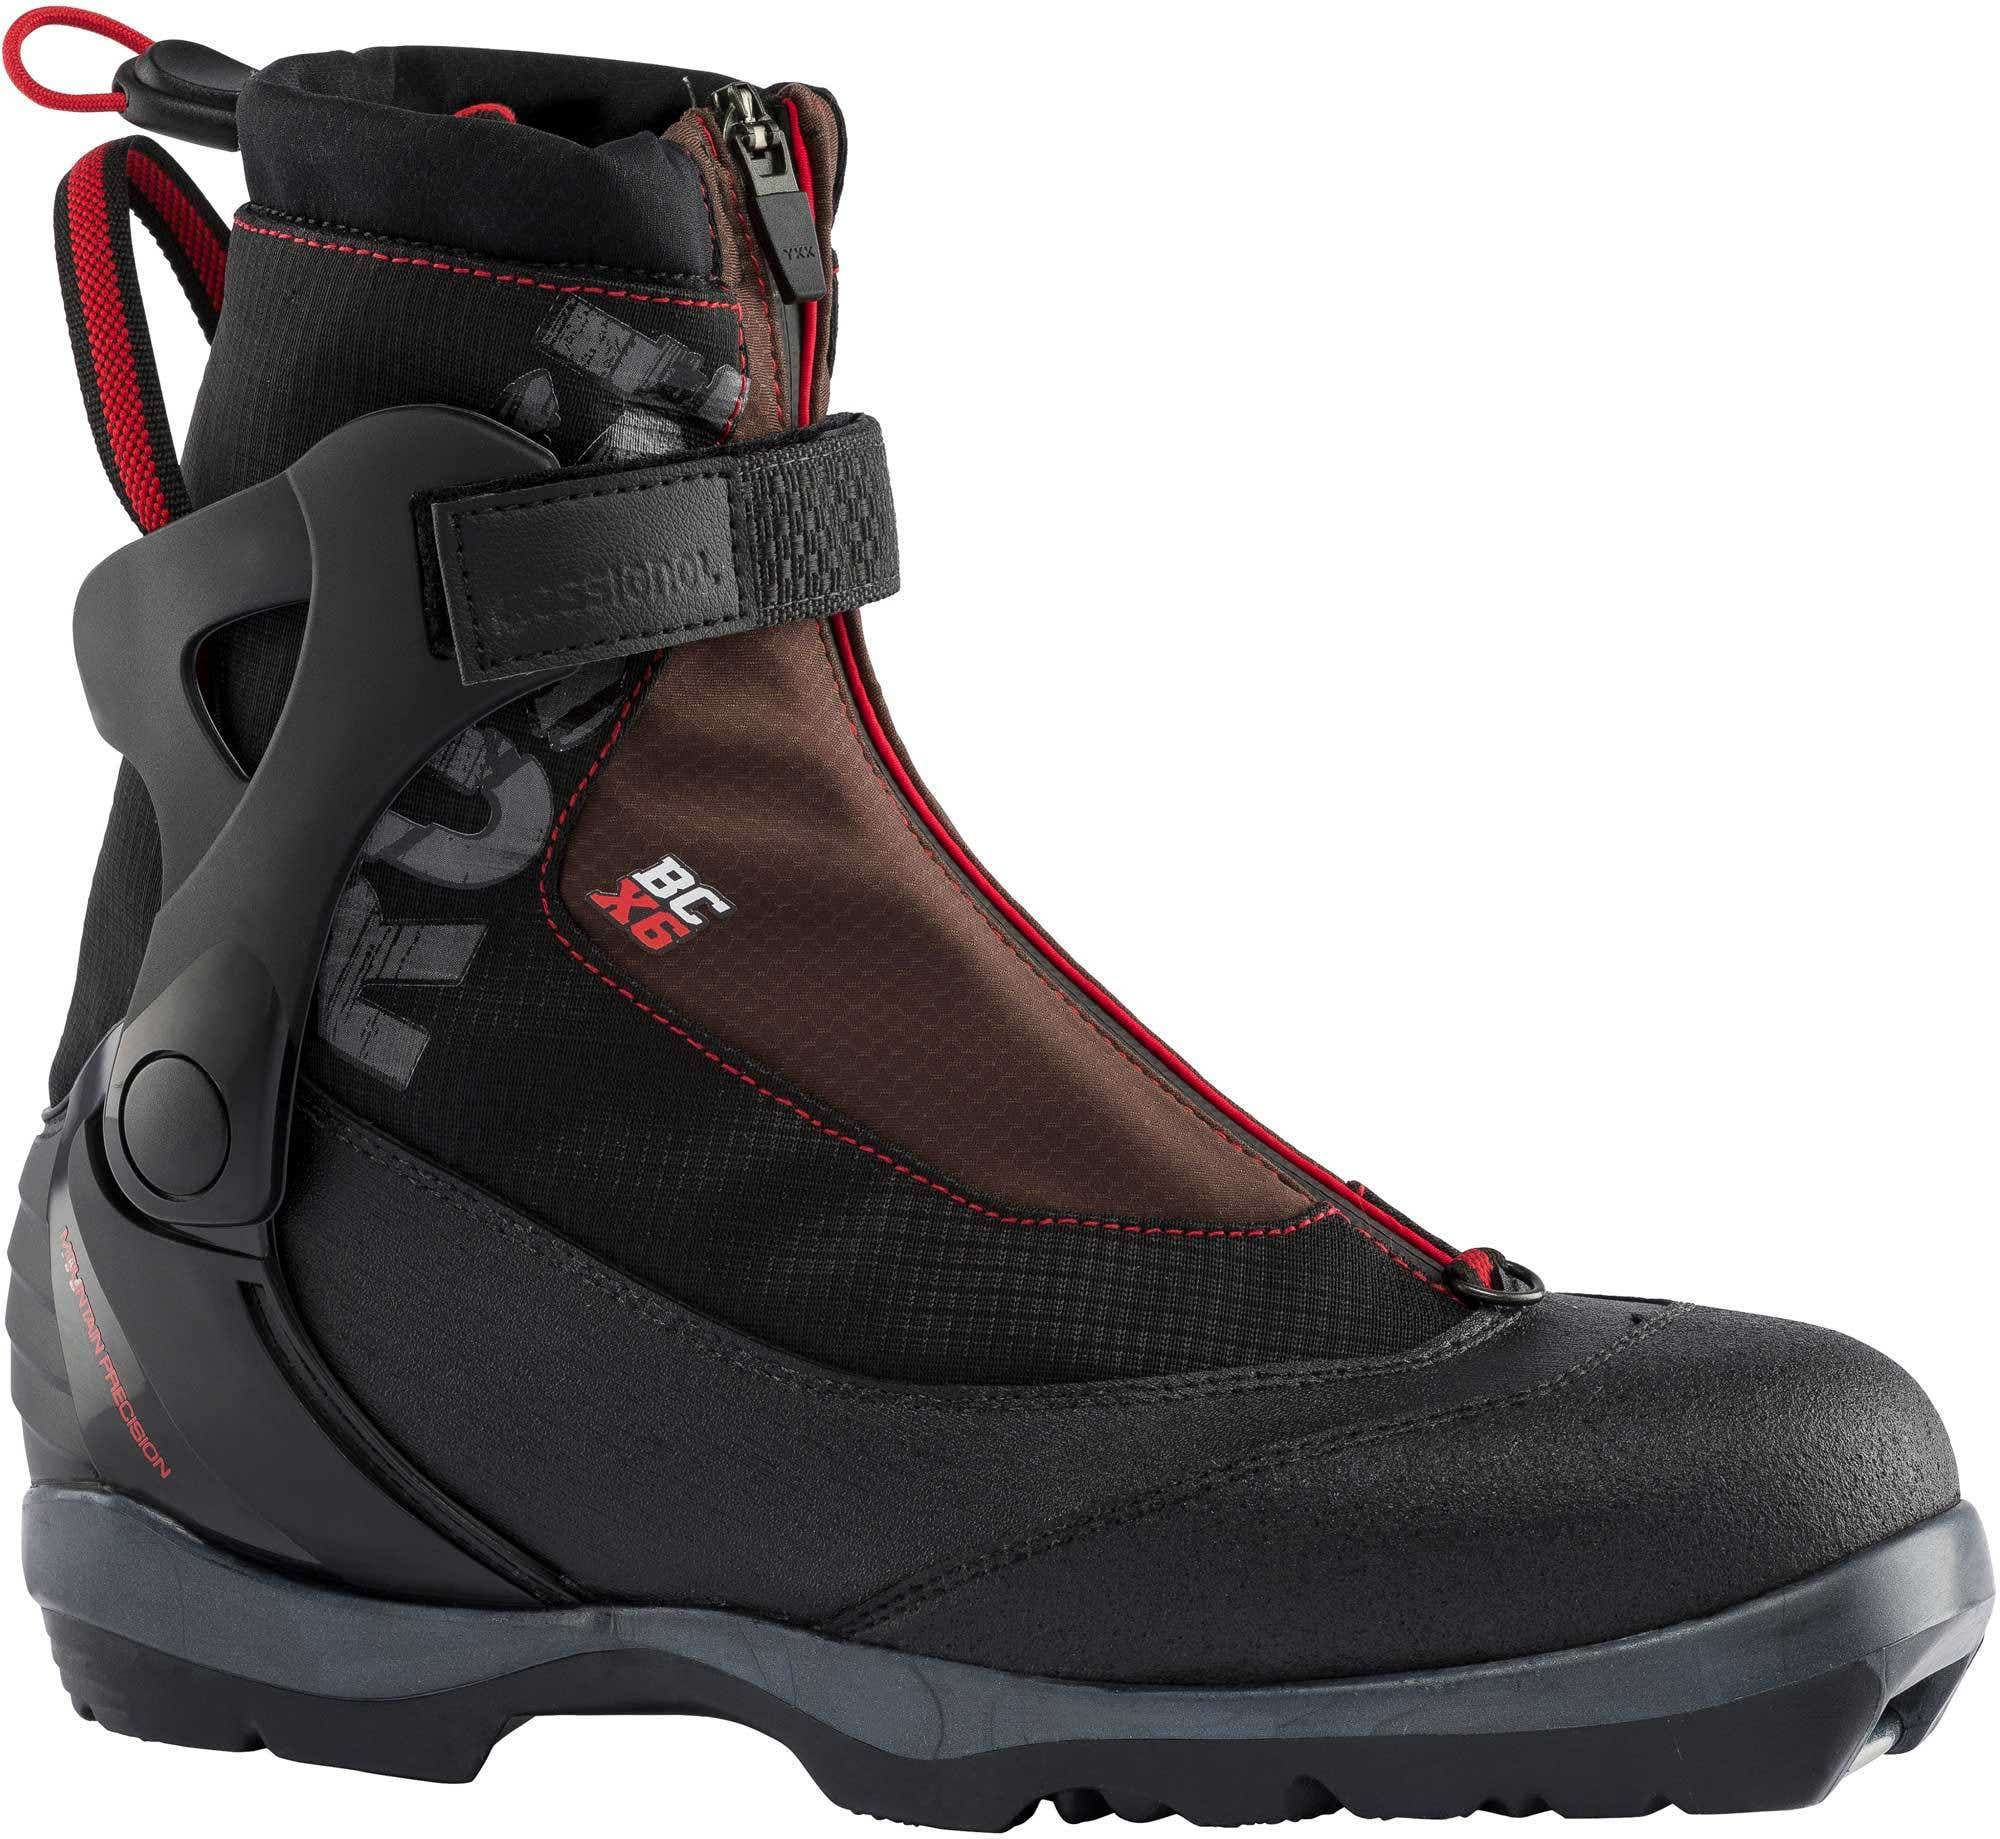 Image of Men's Backcountry Nordic Boots Bc X 6